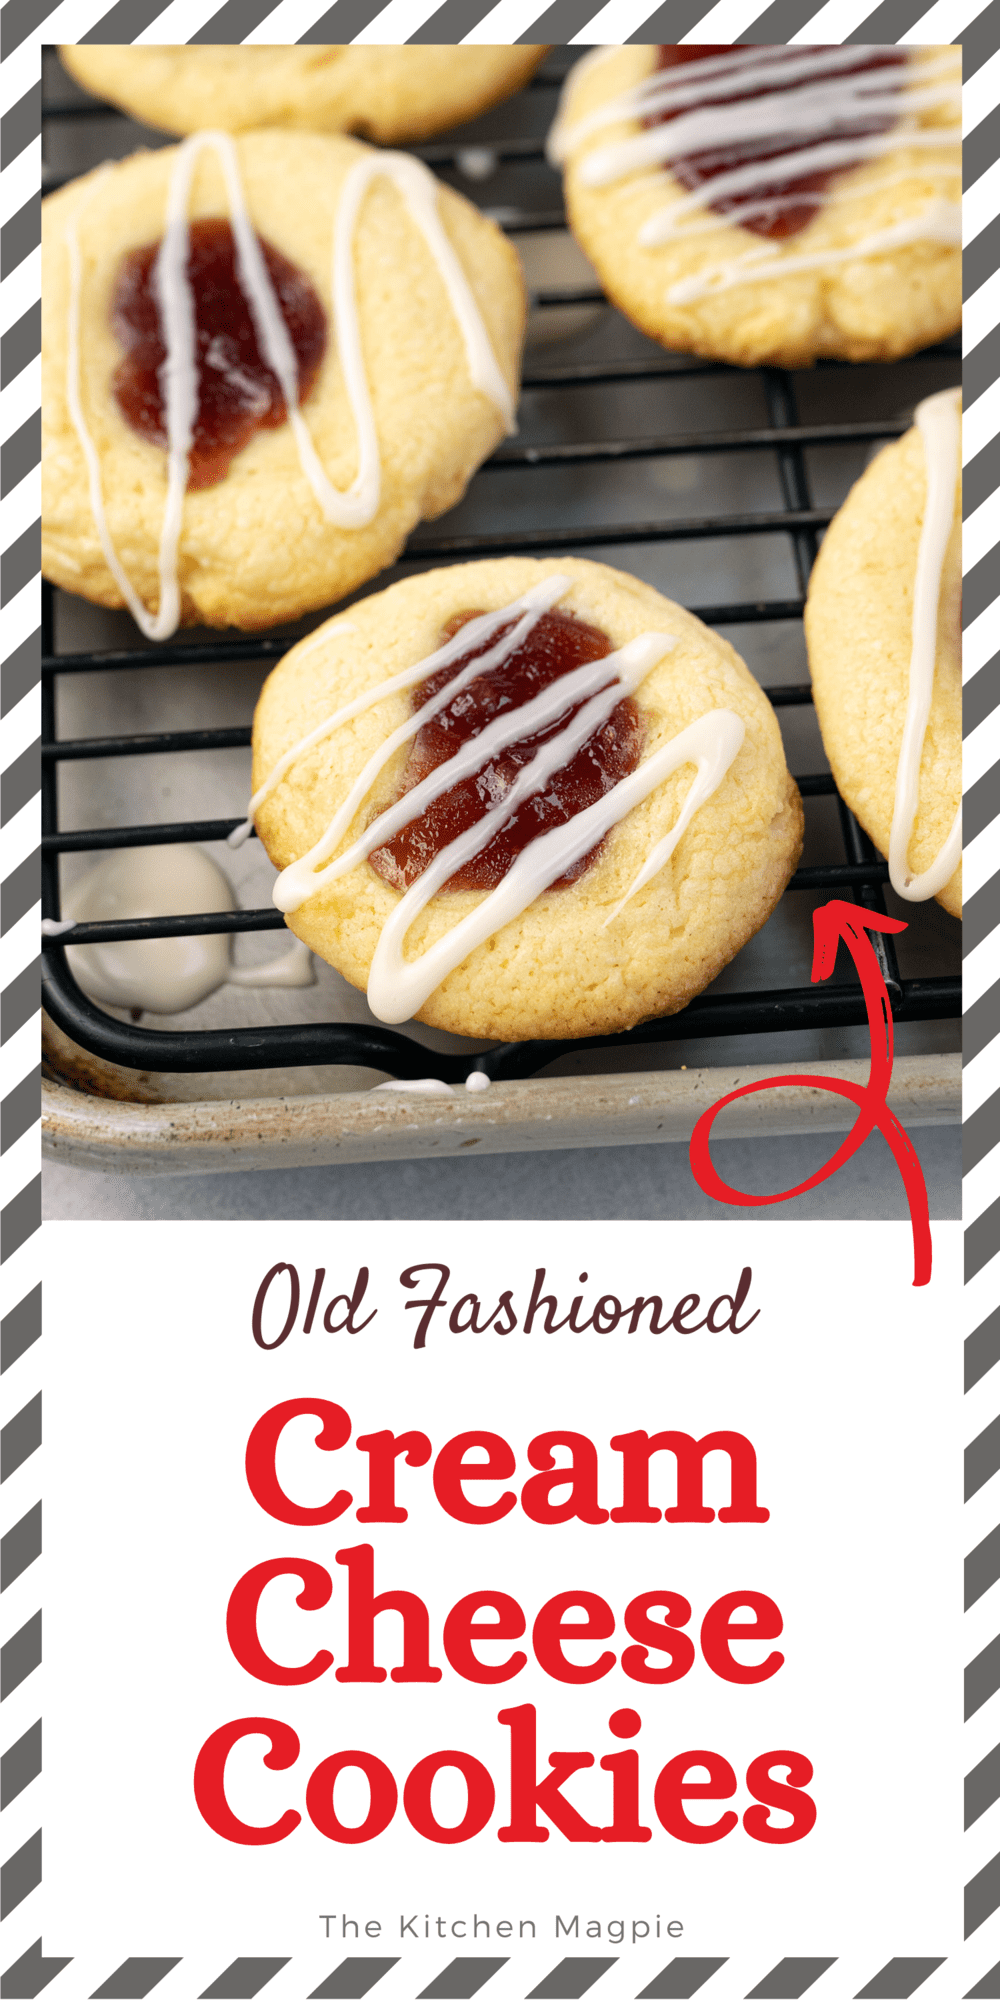 These cream cheese cookies are the perfect tangy, sweet thumbprint cookie! Fill them with jam or even a peppermint candy!